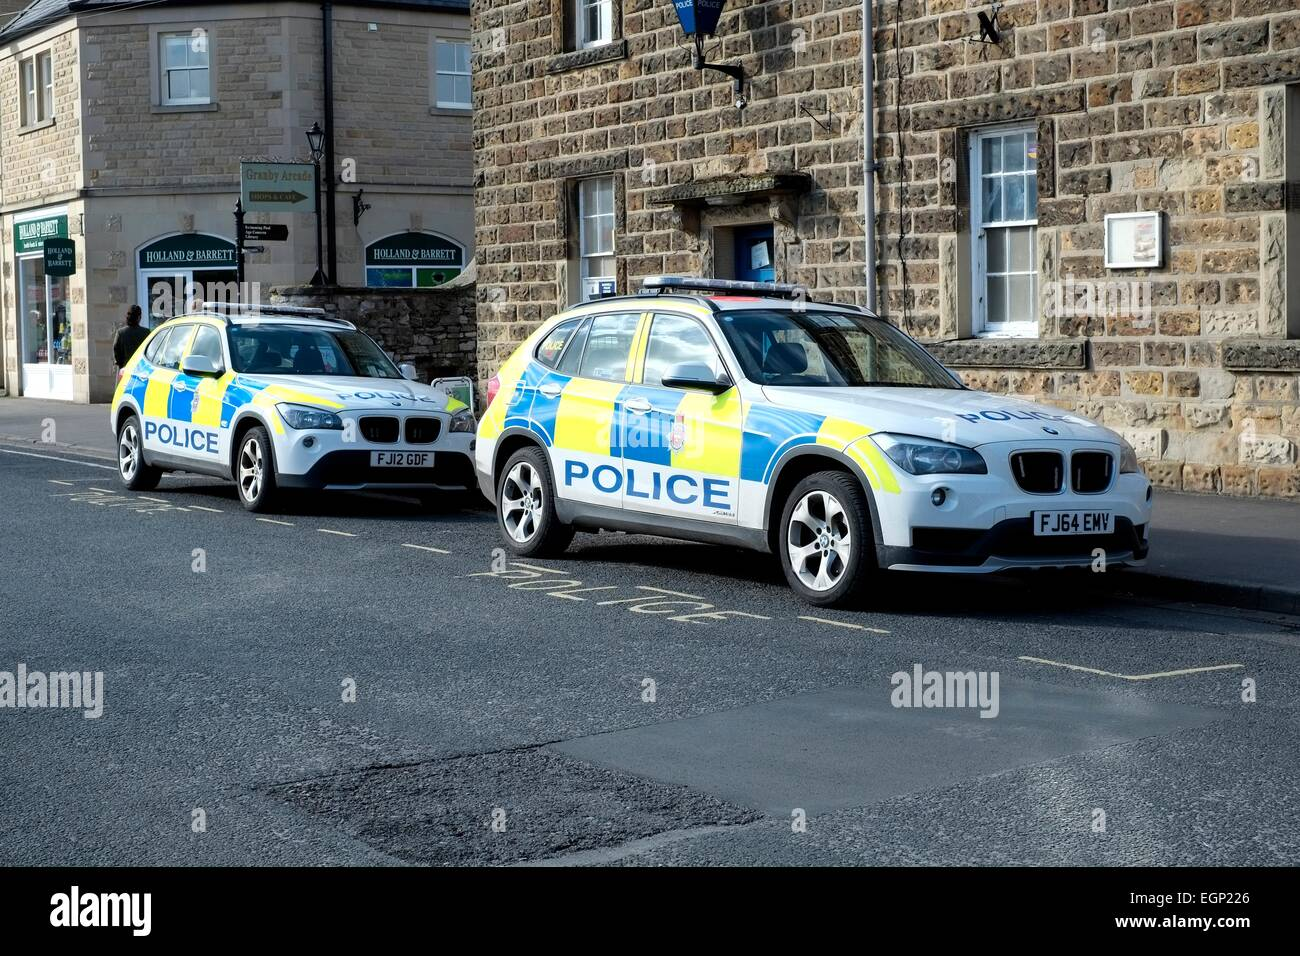 british police cars stock photos & british police cars stock images